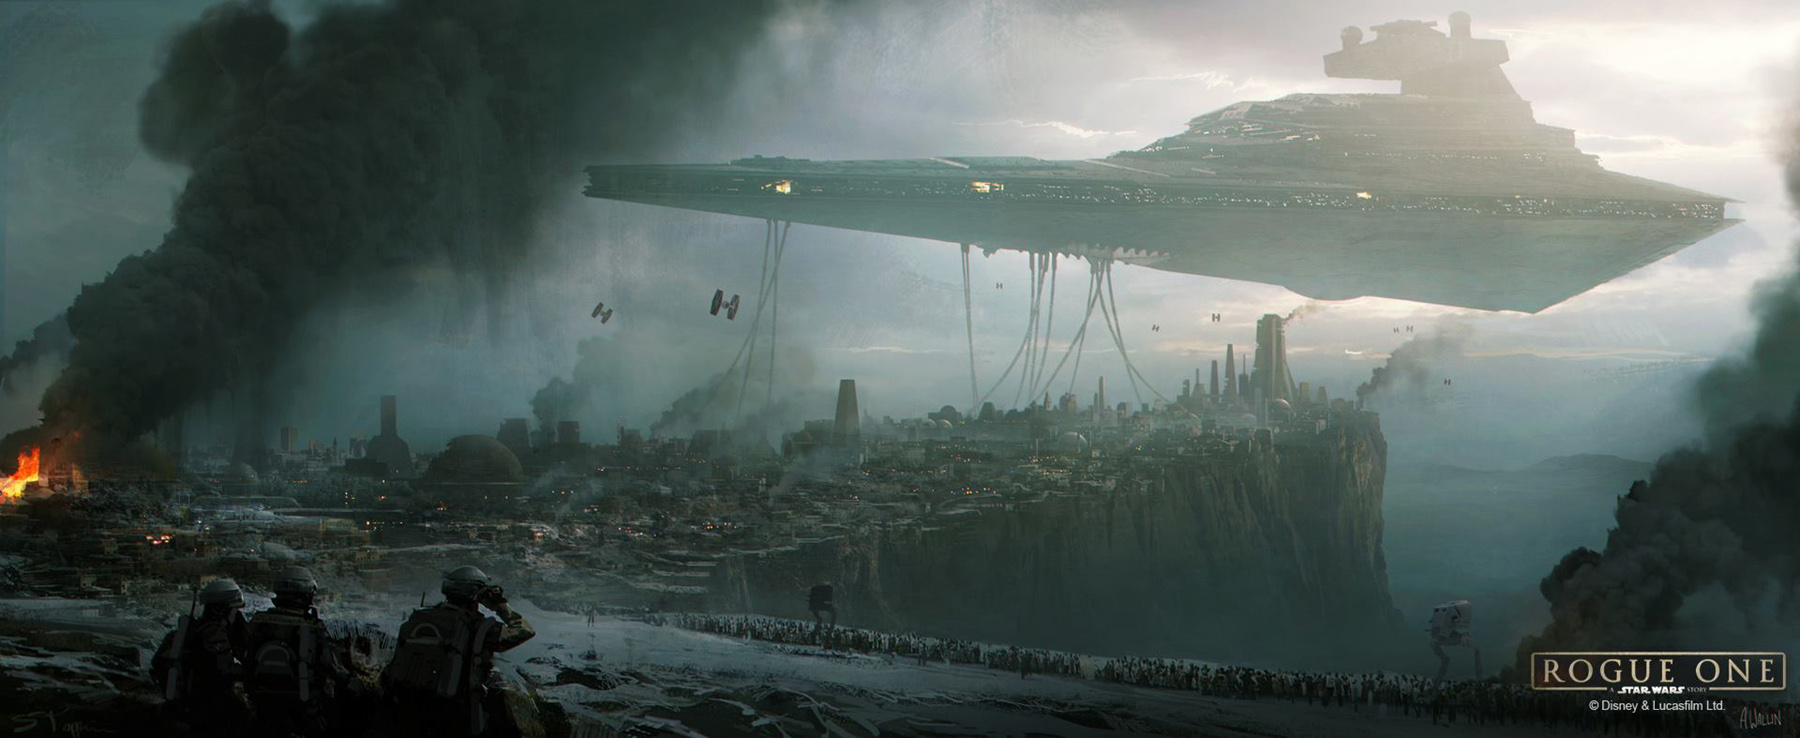 Star Wars Rogue One Jedha Concept Art By Andree Wallin Star Wars Imperial Occupation 2581111 Hd Wallpaper Backgrounds Download